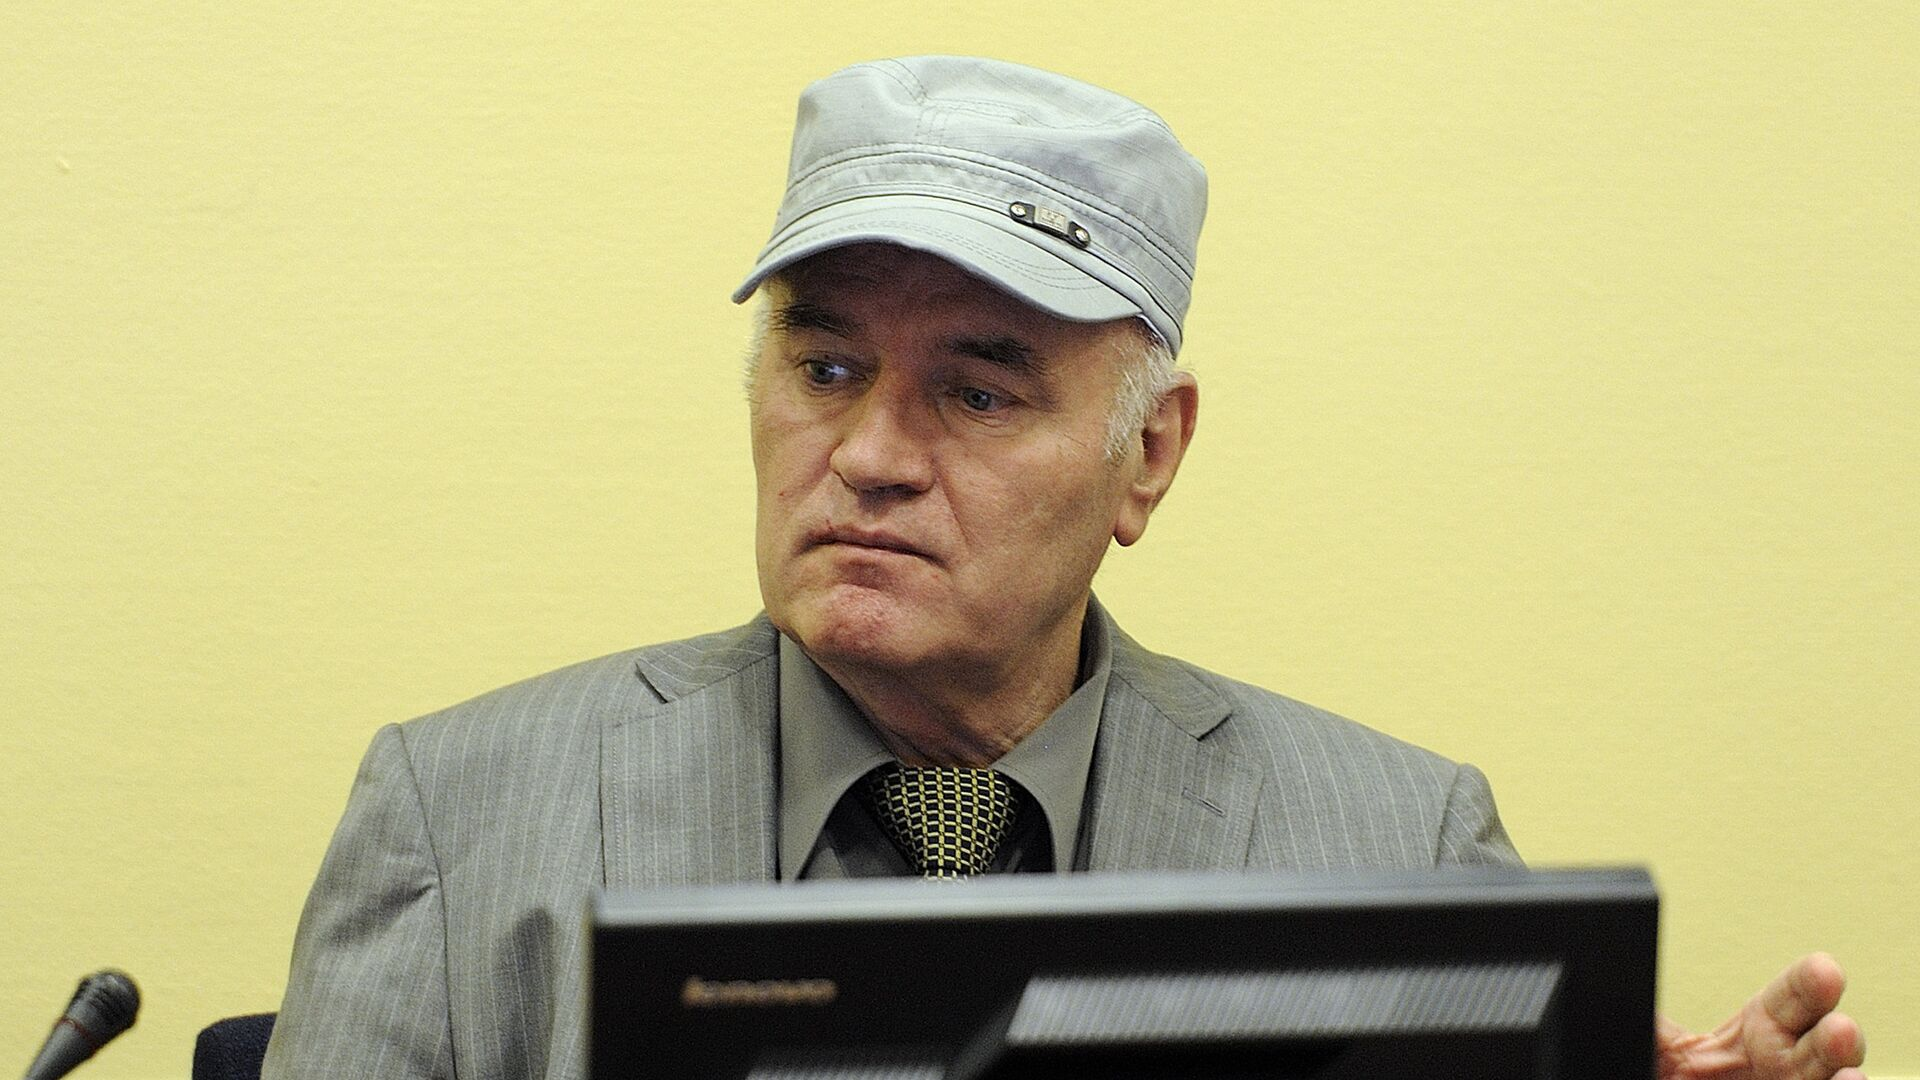 Wartime Bosnian Serb army chief Ratko Mladic sits in the court during his initial appearance at UN war crimes tribunal in The Hague - Sputnik Mundo, 1920, 08.06.2021